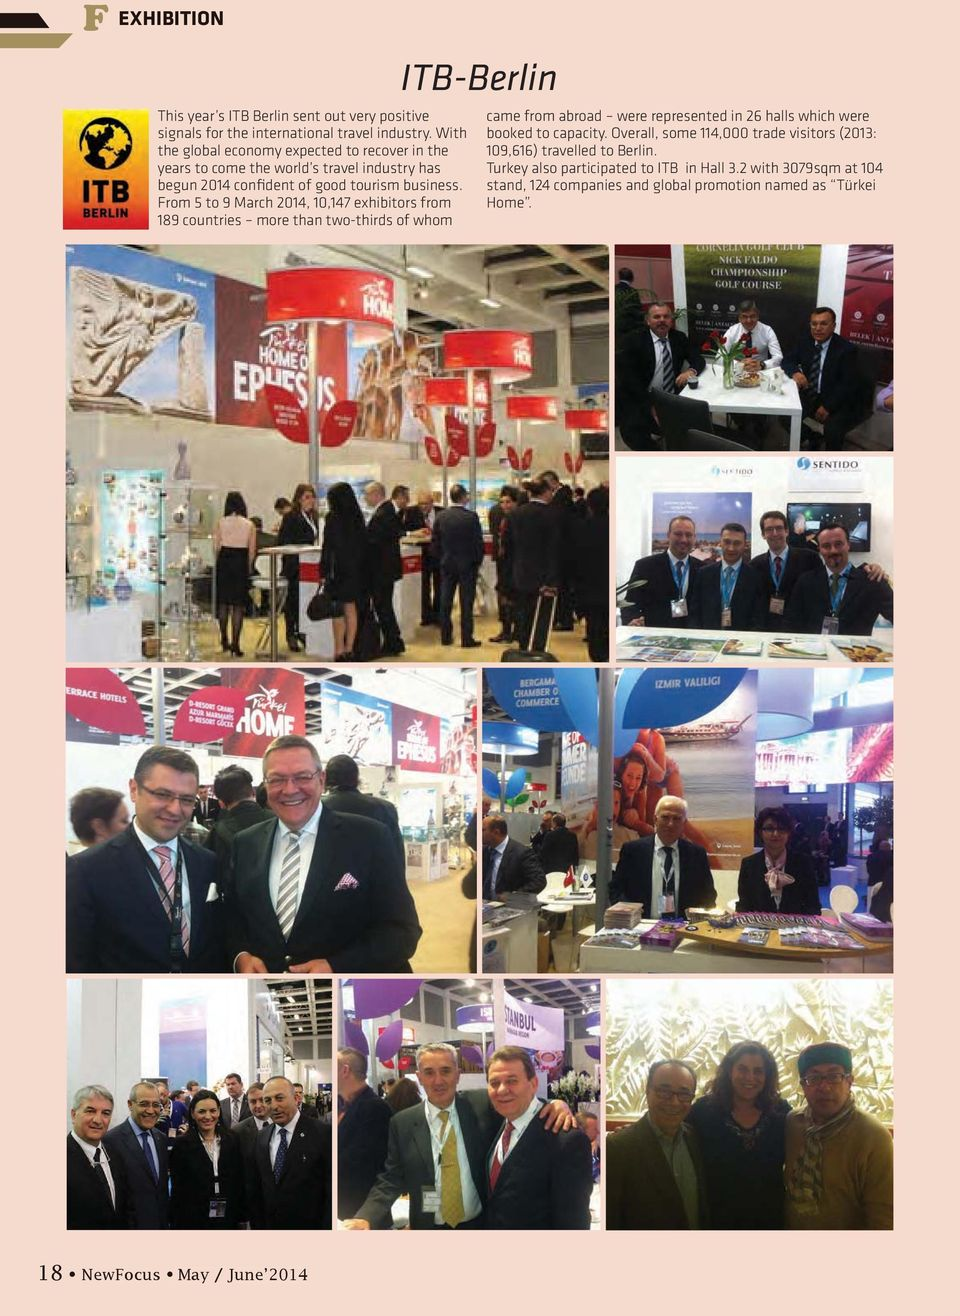 From 5 to 9 March 2014, 10,147 exhibitors from 189 countries more than two-thirds of whom ITB-Berlin came from abroad were represented in 26 halls which were booked